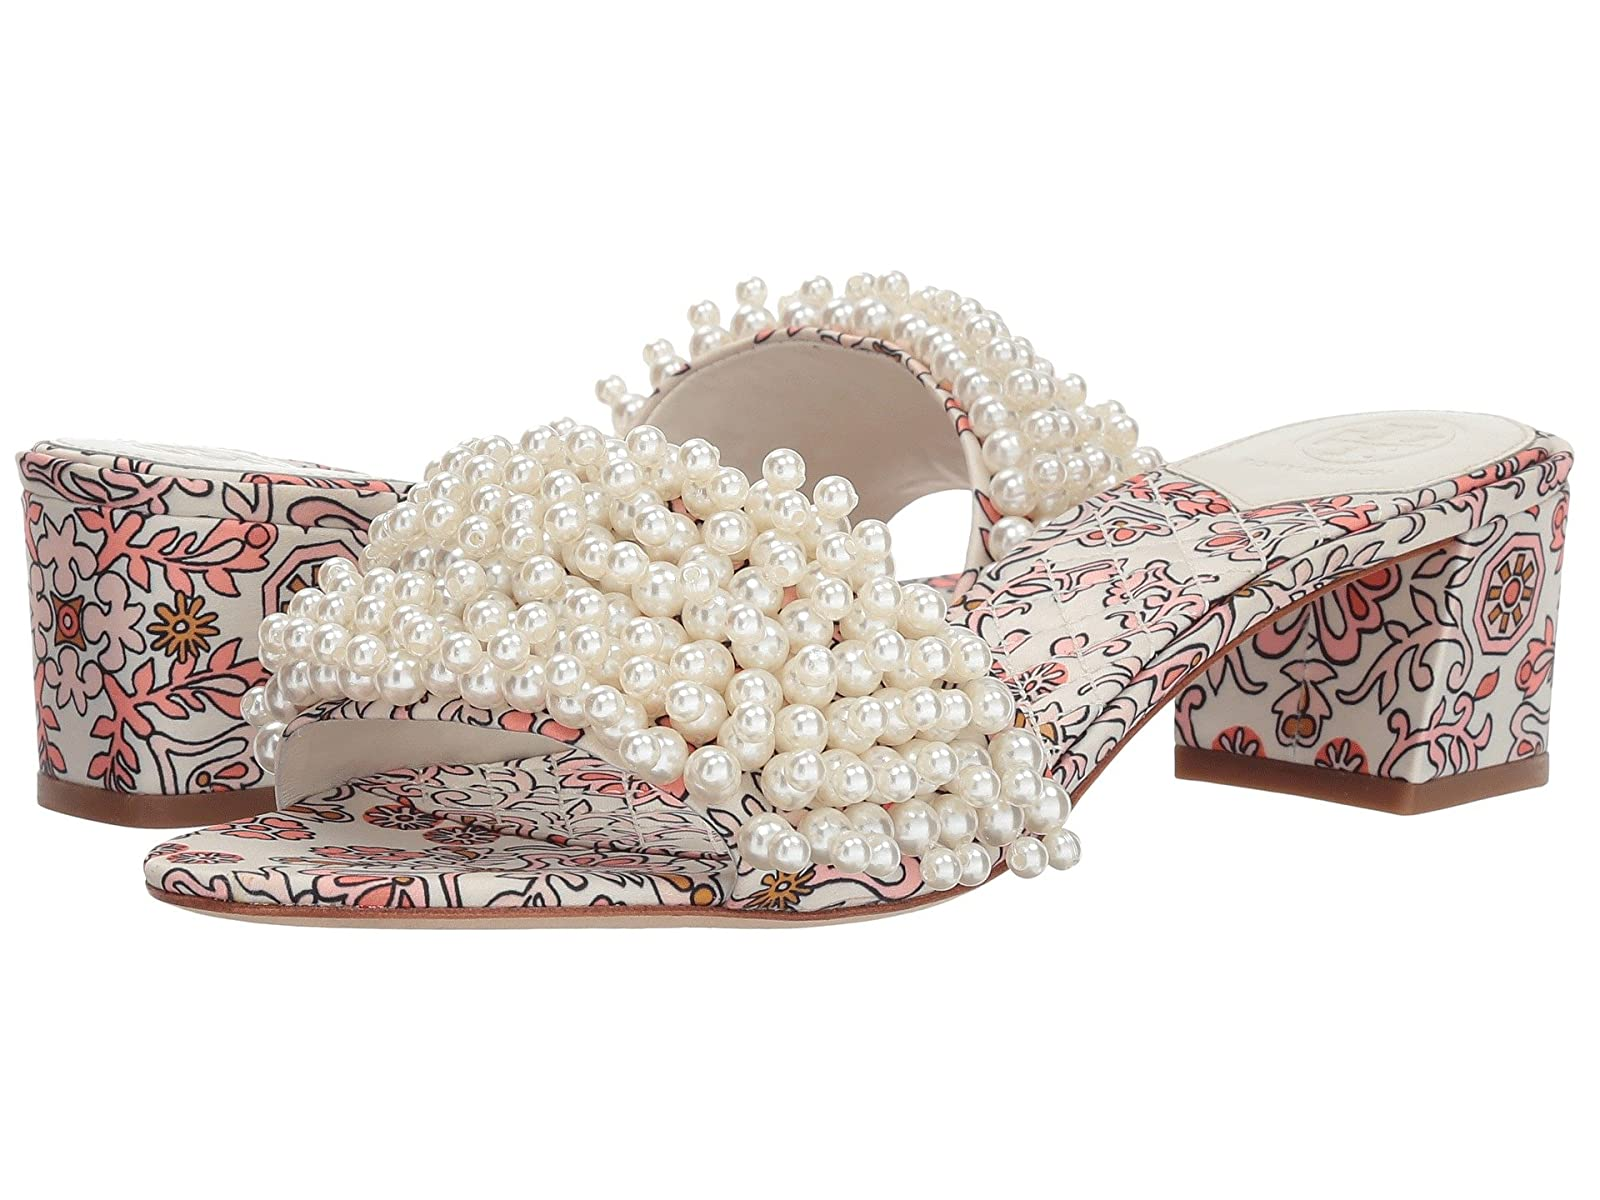 Tory Burch Tatiana 45mm SlideCheap and distinctive eye-catching shoes